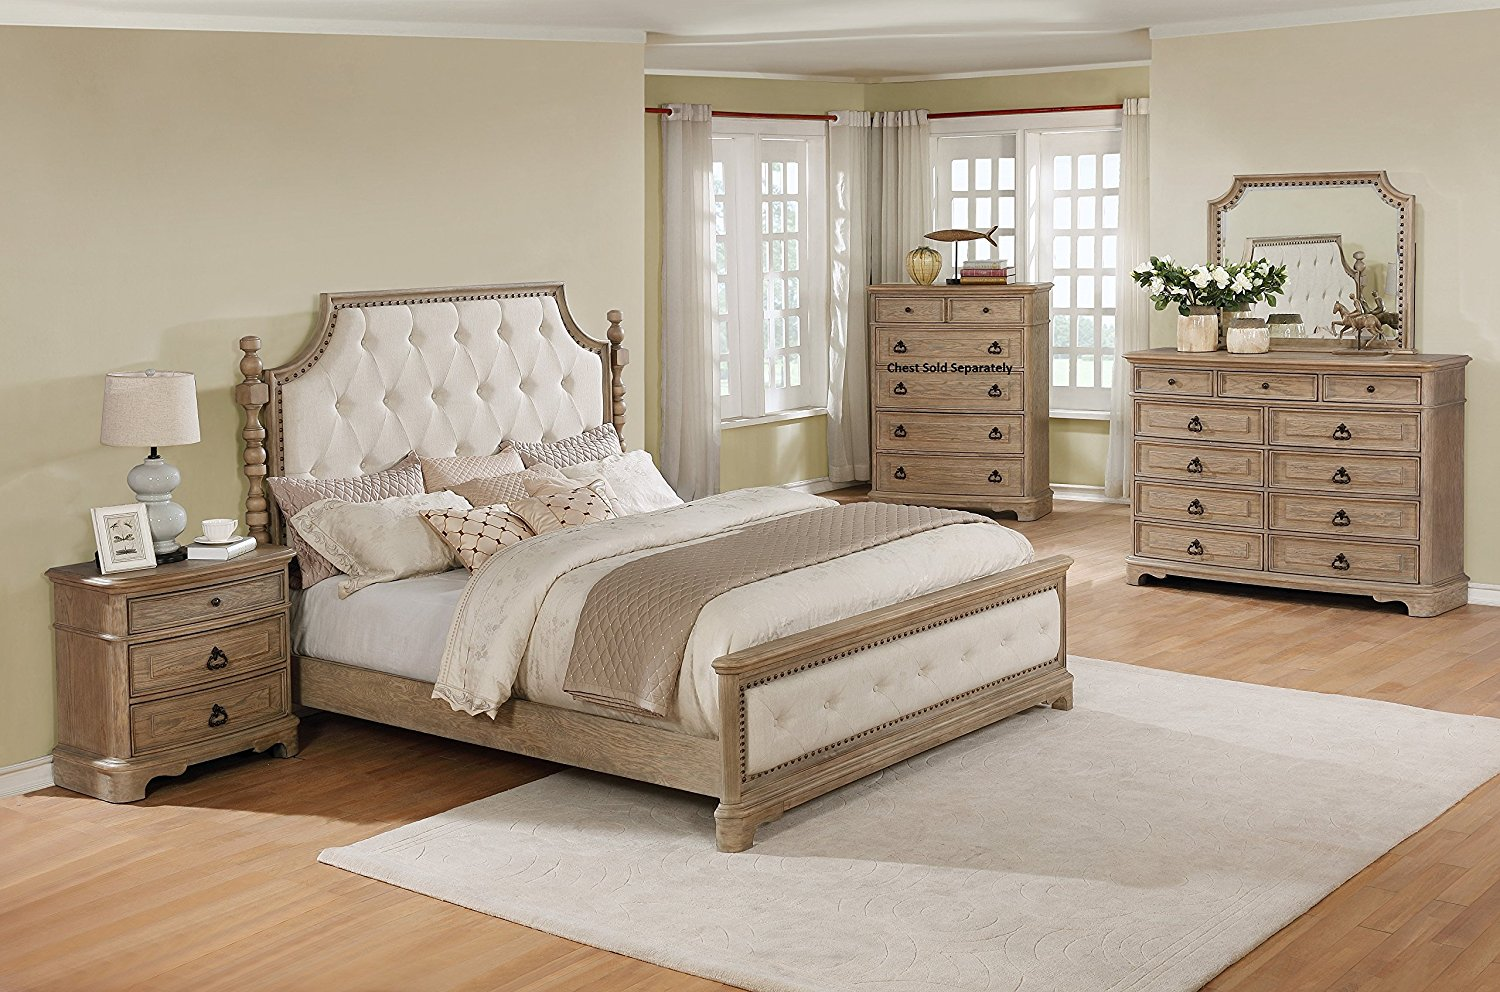 Roundhill Furniture B296QDMN Piraeus 296 Solid Wood Construction Bedroom Set with Queen Size Bed, Dresser, Mirror and Night Stand